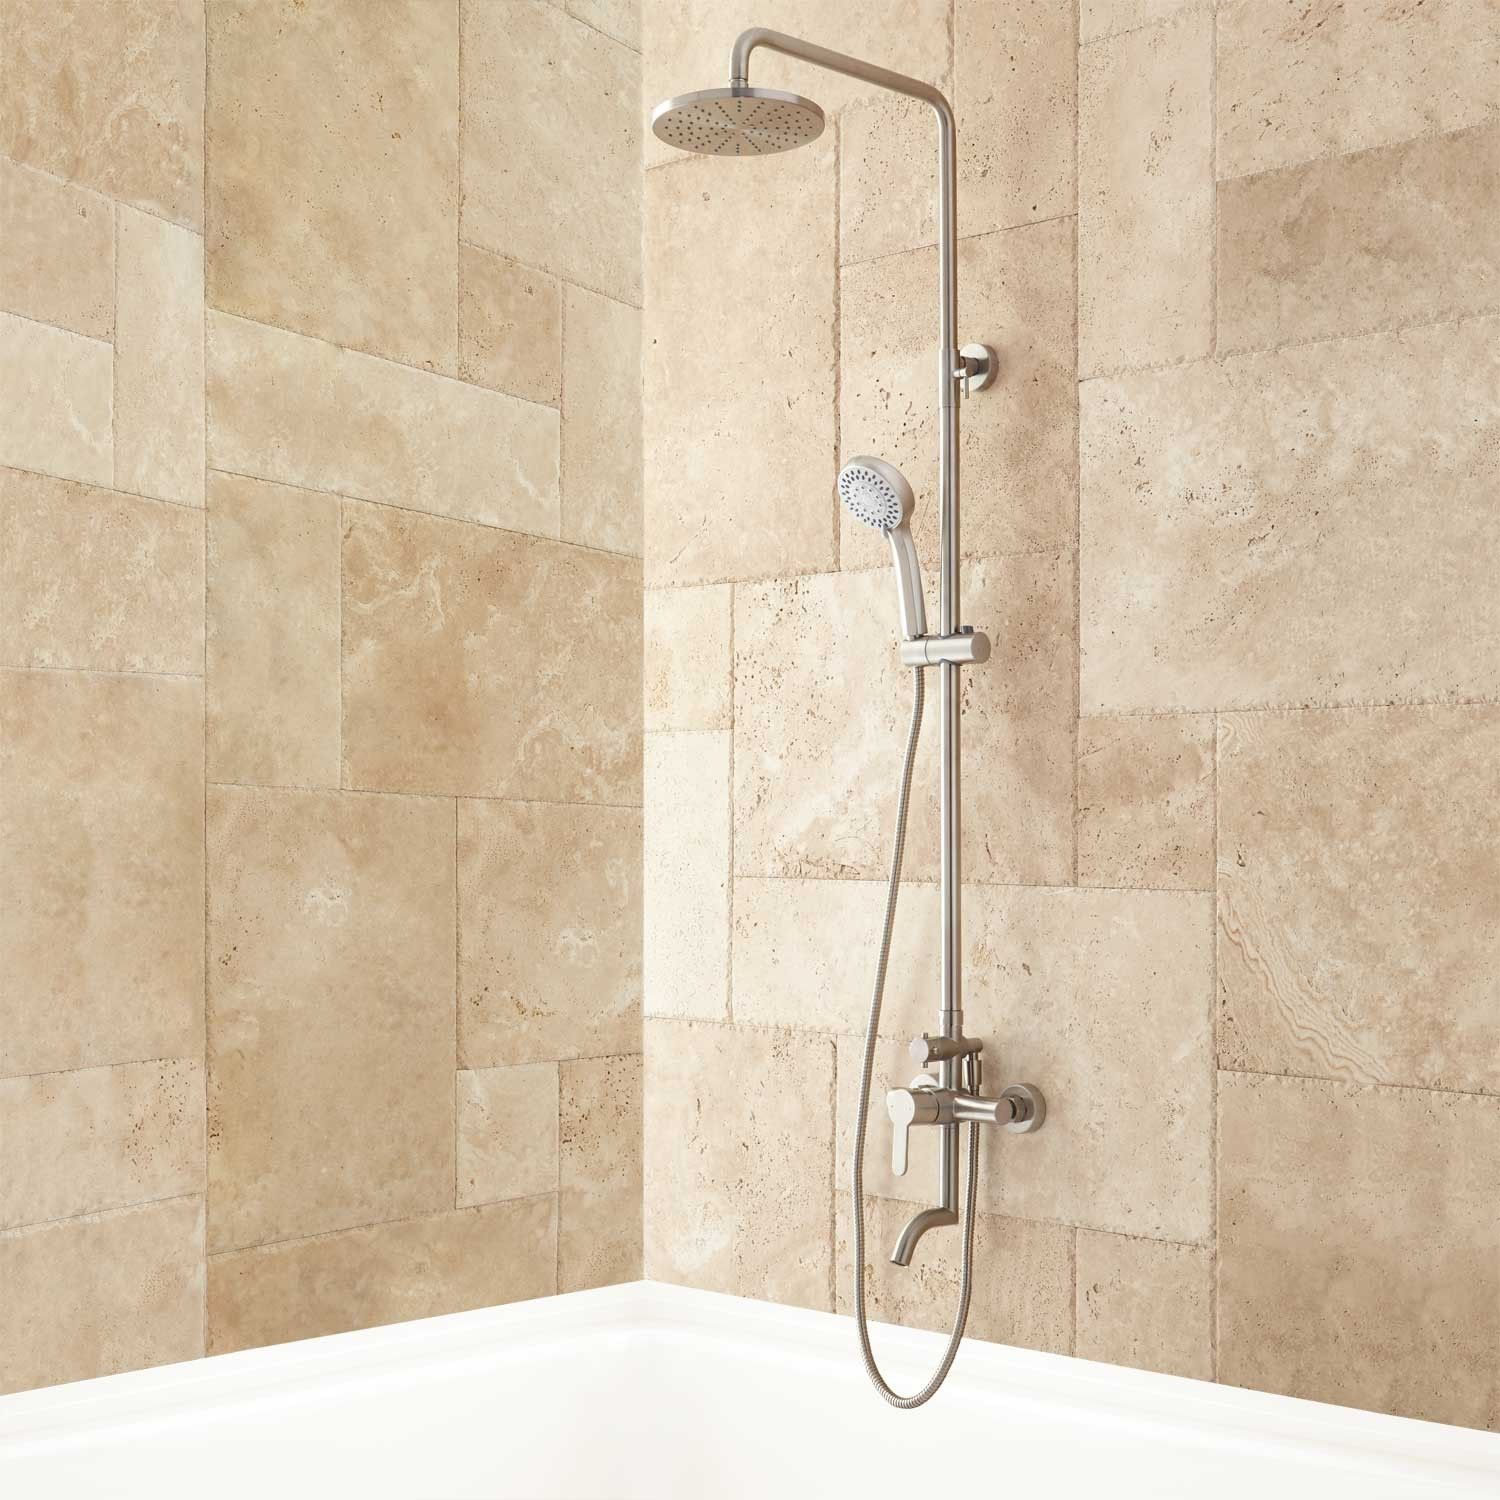 Marvelous Jurado Exposed Pipe Tub And Shower Set   Brushed Nickel   Tub And Shower  Sets